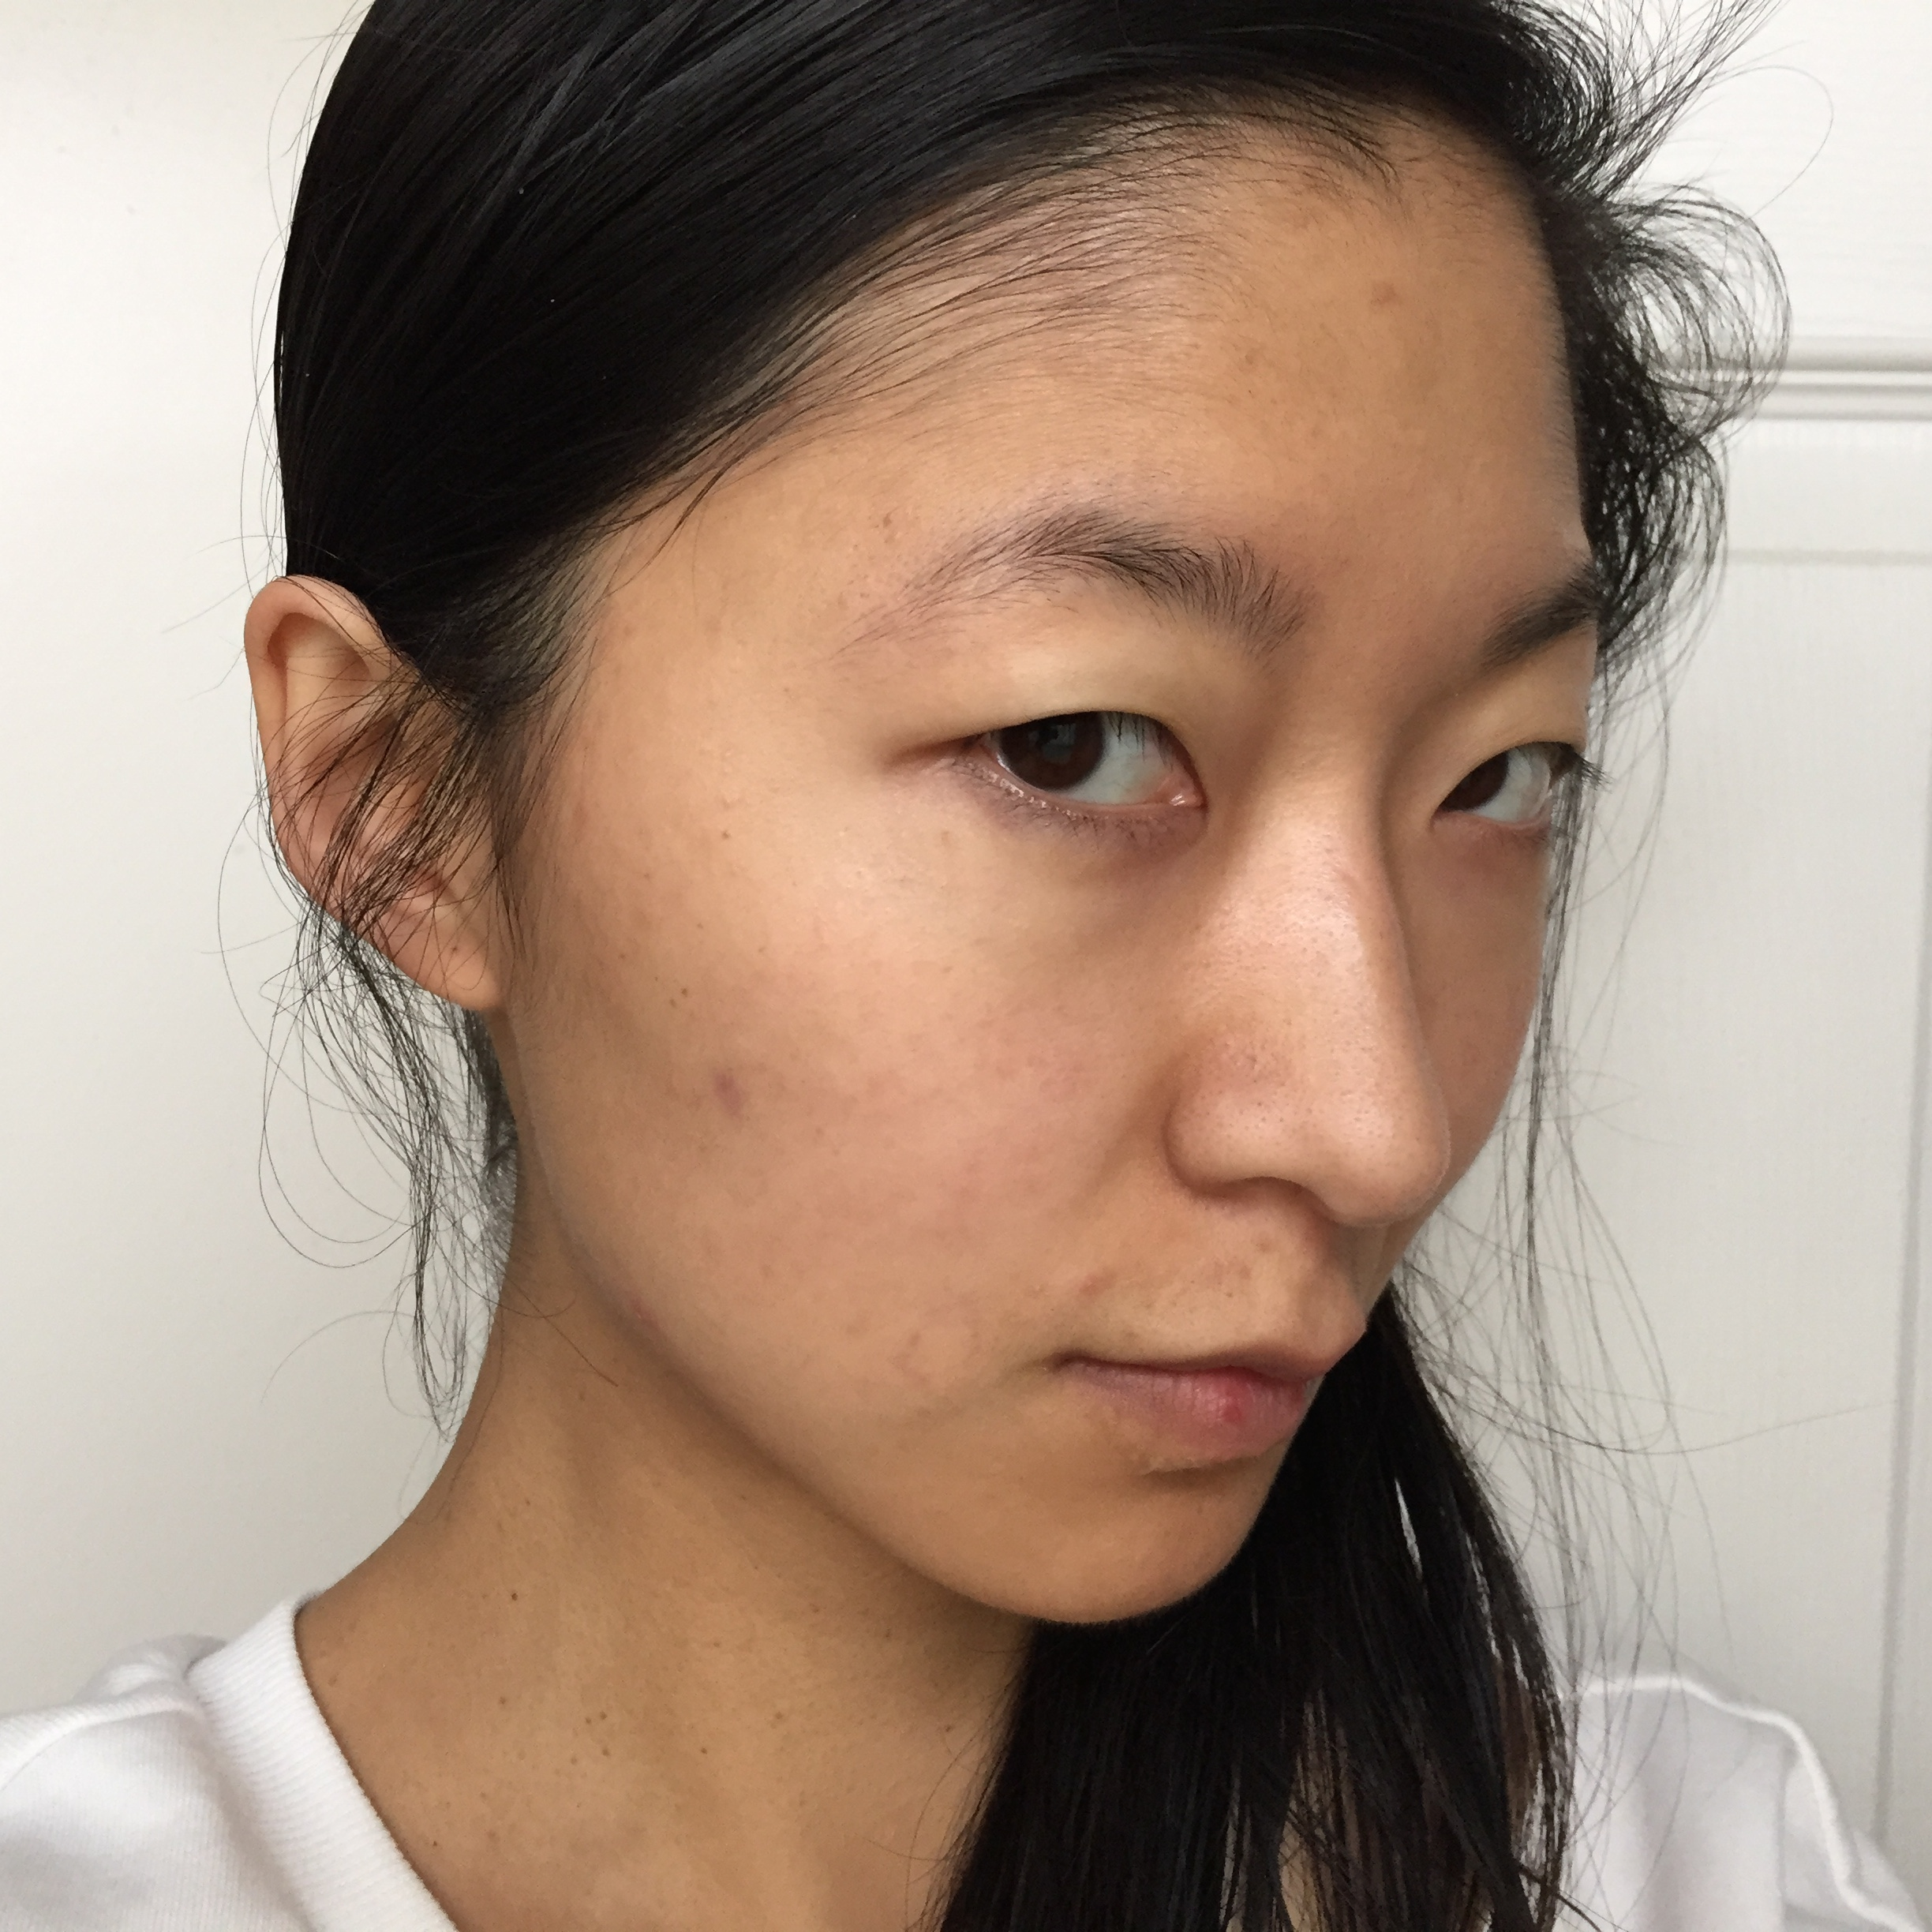 Before Concealer : Look at that big spot on my cheek!